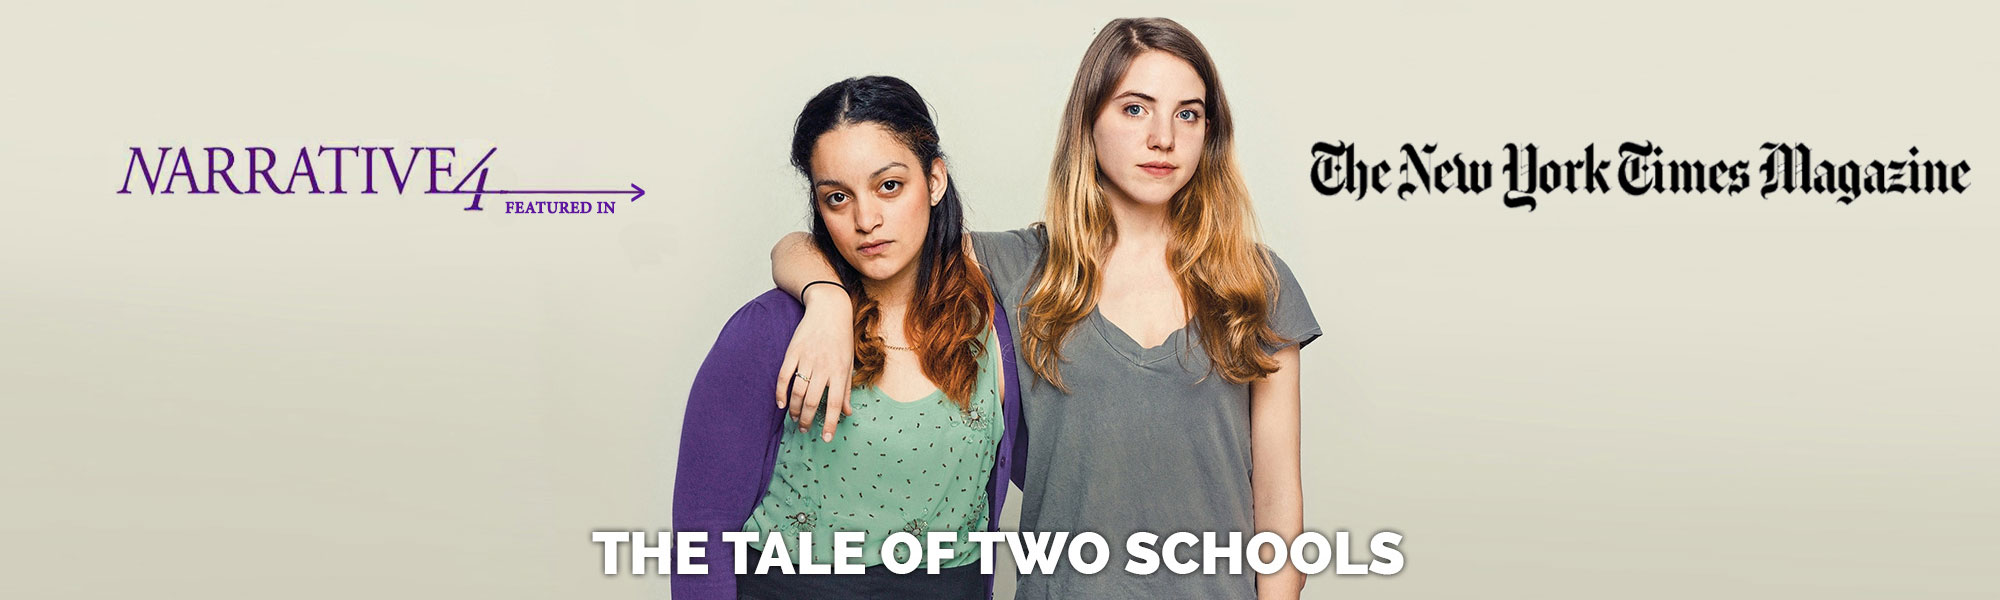 The Tale of Two Schools